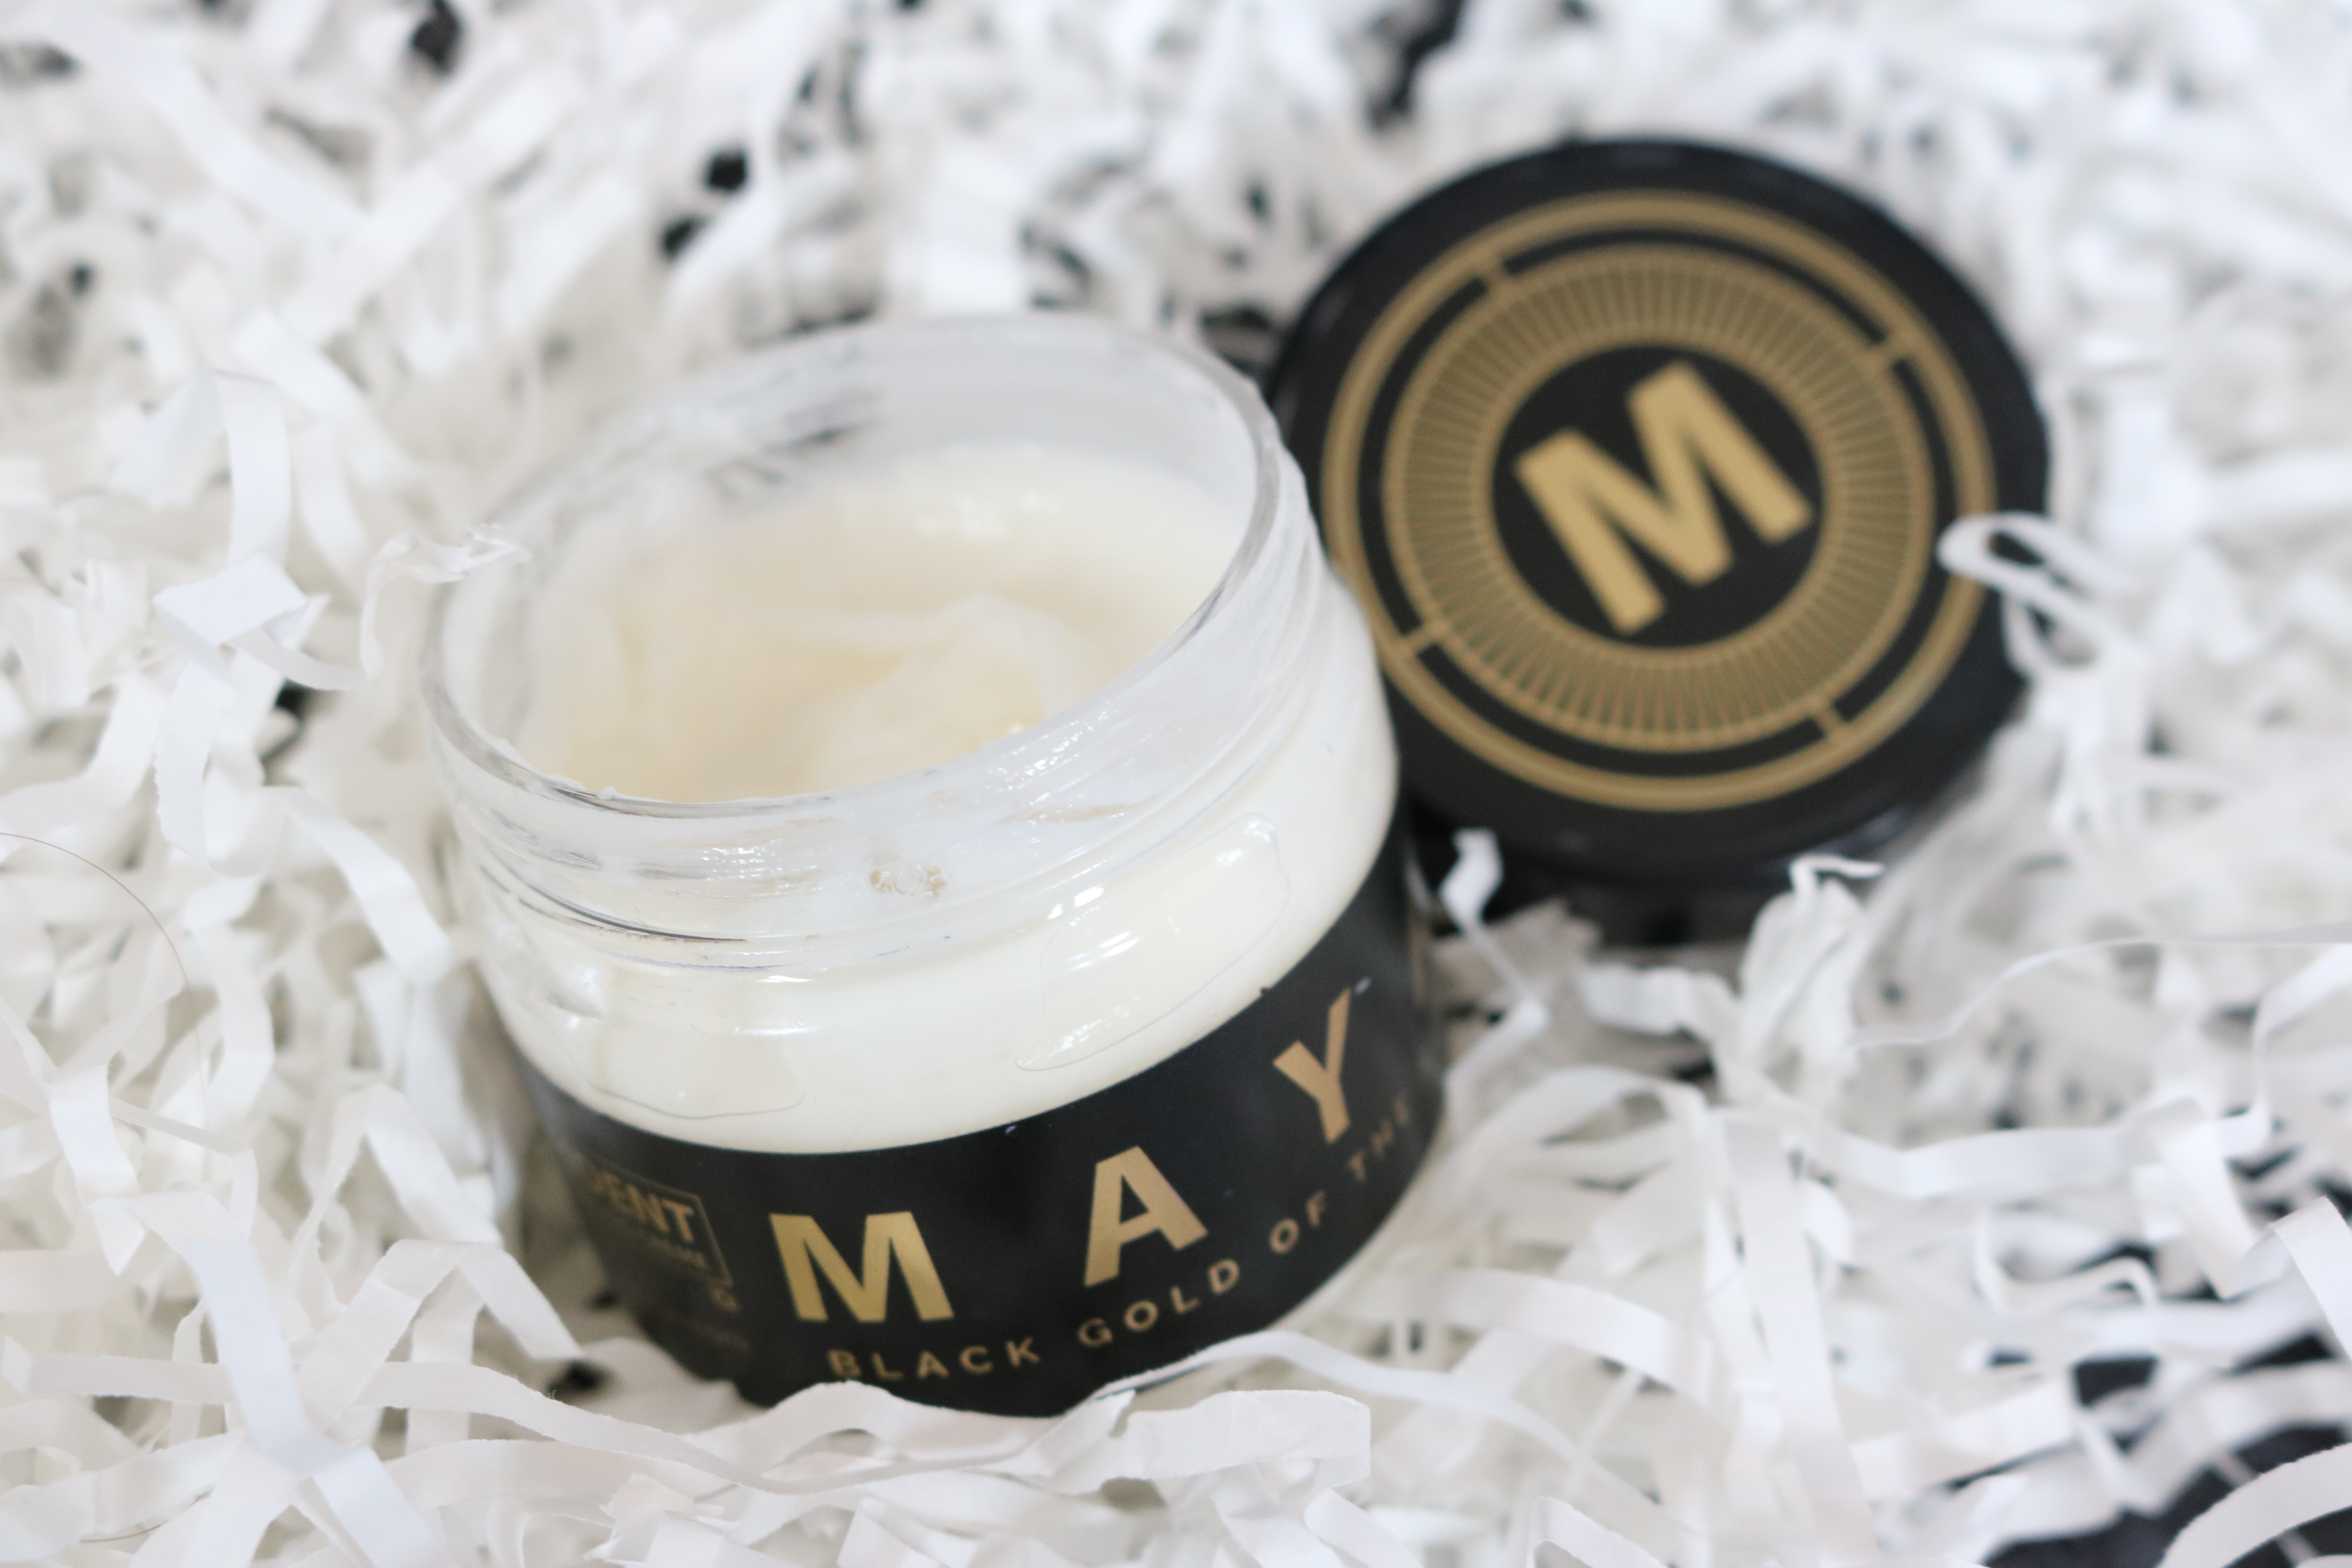 Jodetopia The Hair Diaries Maya Styling and Curling Creme Review